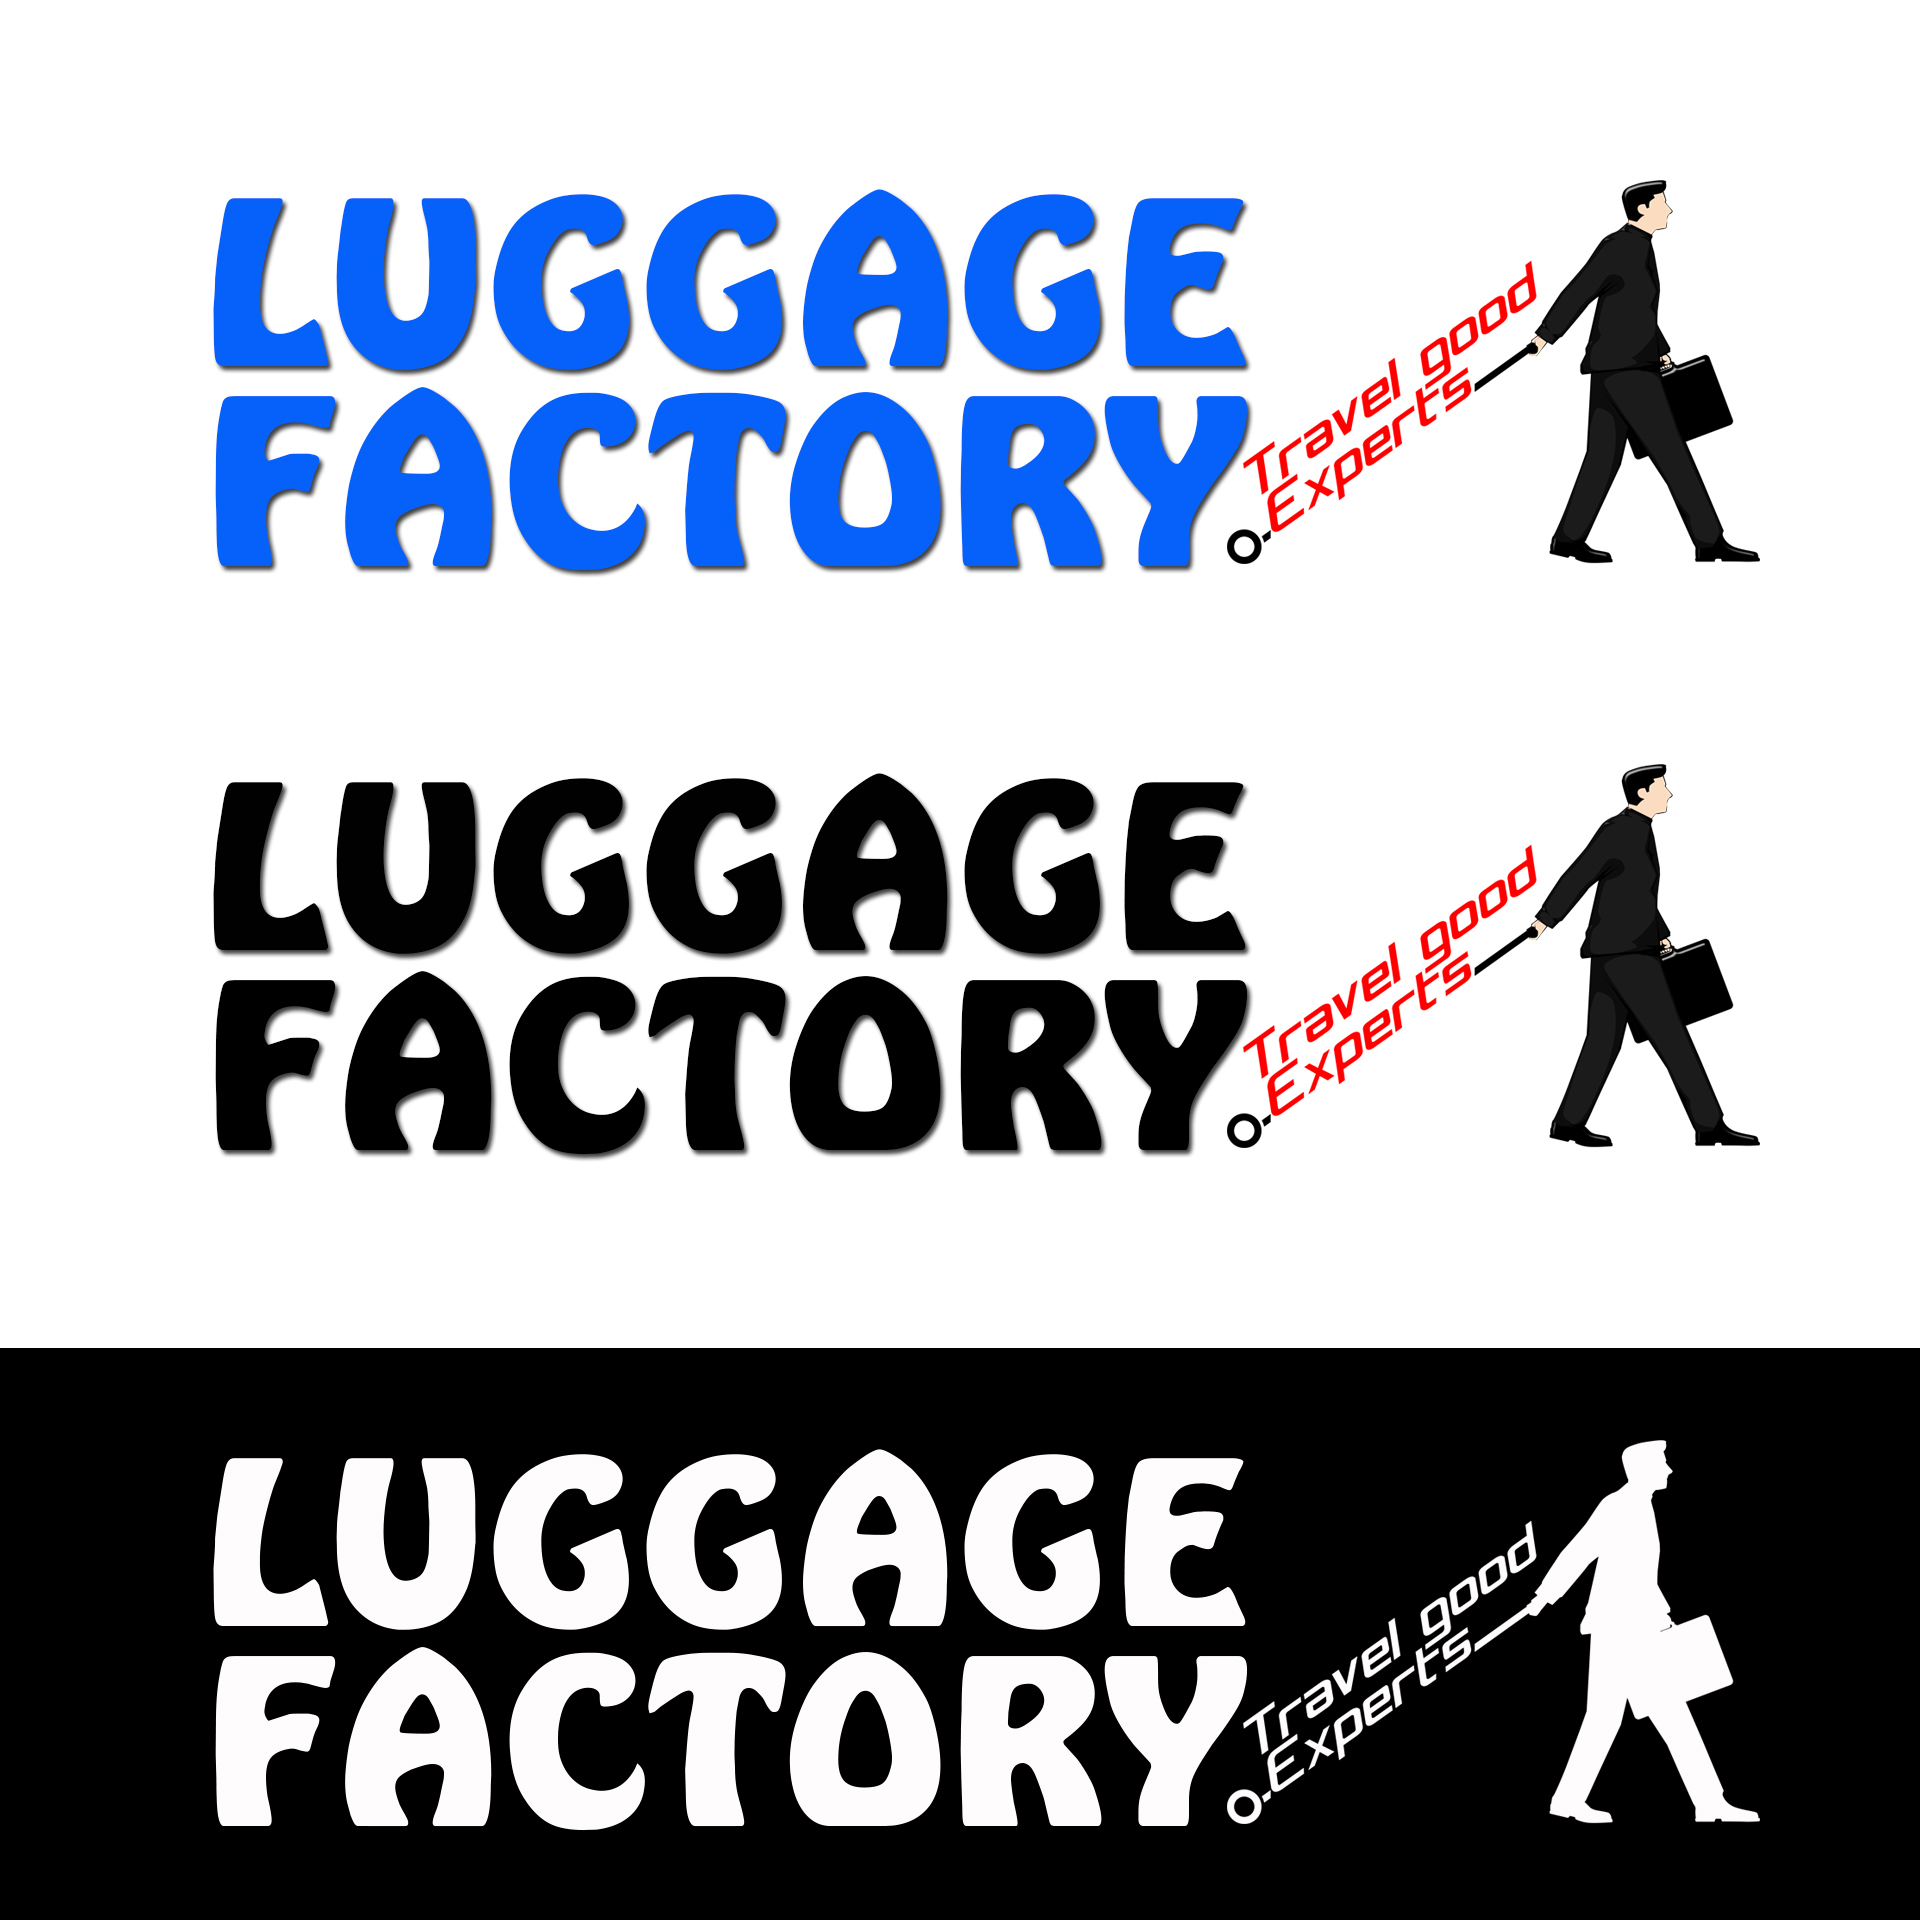 Logo Design by chAnDOS - Entry No. 96 in the Logo Design Contest Creative Logo Design for Luggage Factory.